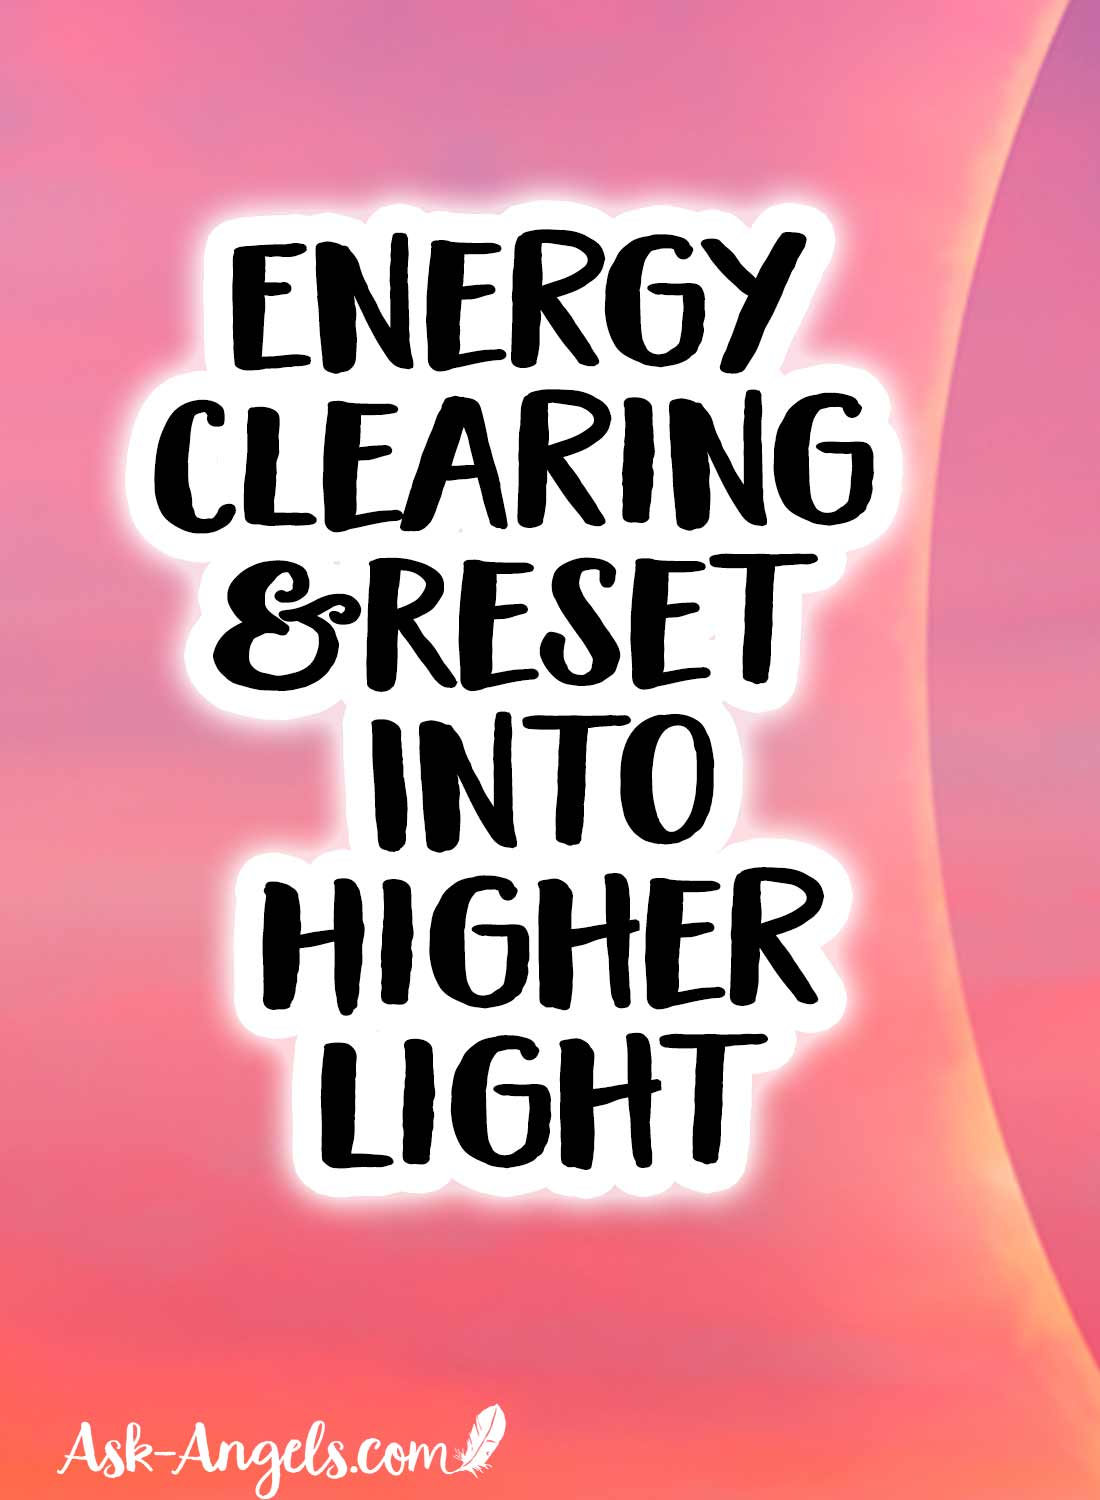 Energy Clearing & Reset Into Higher Light